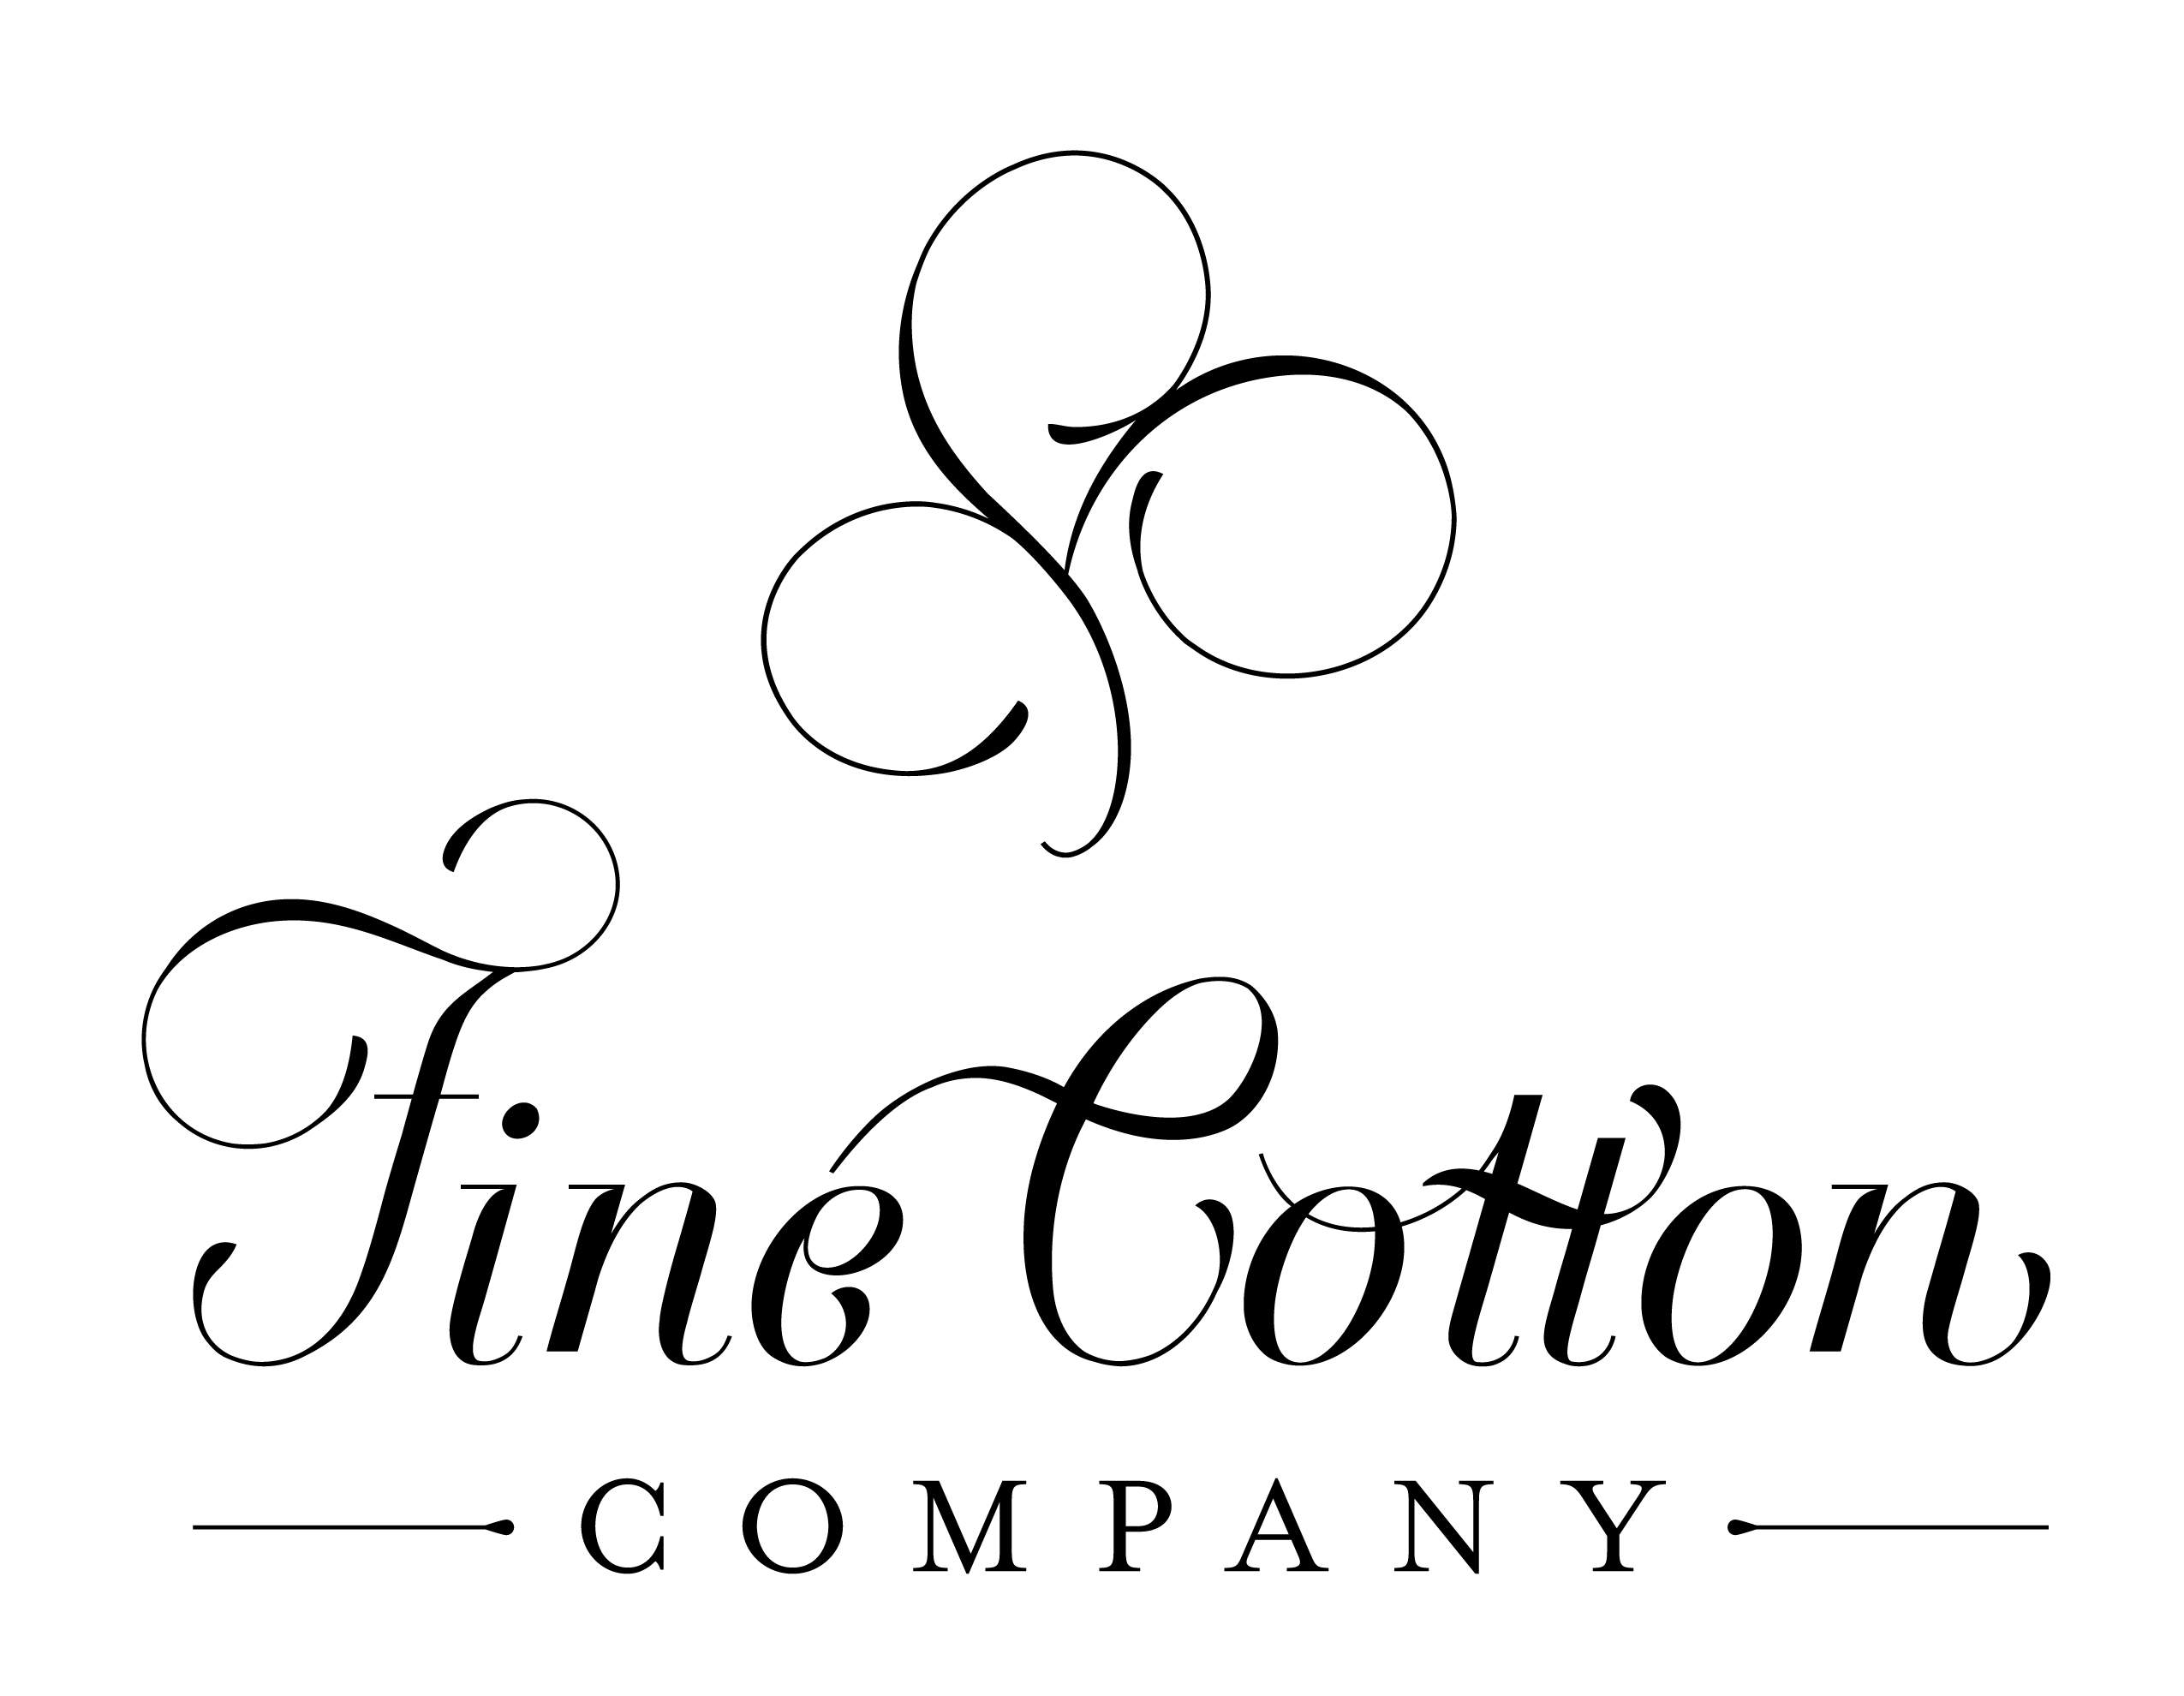 FINE_COTTON_COMPANY_central_logo